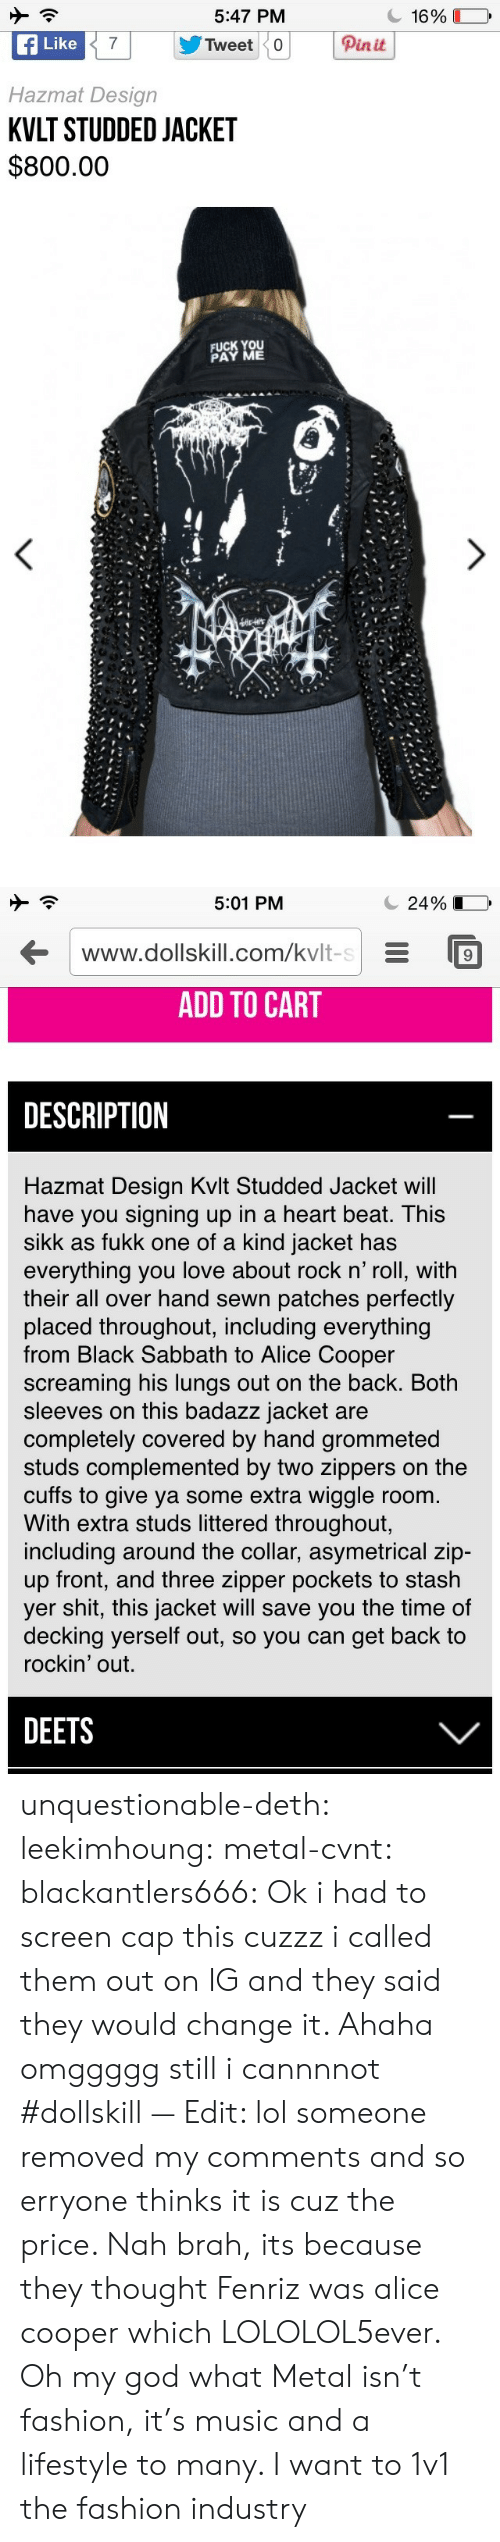 Kvlt: 5:47 PM  f Like  Hazmat Design  KVLT STUDDED JACKET  $800.00  Pinit  FUCK YOU  PAY ME   5:01 PM  С 24 901  www.dollskill.com/kvlt-sE9  ADD TO CART  DESCRIPTION  Hazmat Design Kvlt Studded Jacket wil  have you signing up in a heart beat. This  sikk as fukk one of a kind jacket has  everything you love about rock n' roll, with  their all over hand sewn patches perfectly  placed throughout, including everything  from Black Sabbath to Alice Cooper  screaming his lungs out on the back. Both  sleeves on this badazz jacket are  completely covered by hand grommeted  studs complemented by two zippers on the  cuffs to give ya some extra wiggle room.  With extra studs littered throughout,  including around the collar, asymetrical zip-  up front, and three zipper pockets to stash  yer shit, this jacket will save you the time of  decking yerself out, so you can get back to  rockin' out.  DEETS unquestionable-deth:  leekimhoung: metal-cvnt:   blackantlers666:   Ok i had to screen cap this cuzzz i called them out on IG and they said they would change it. Ahaha omggggg still i cannnnot  #dollskill  — Edit: lol someone removed my comments and so erryone thinks it is cuz the price. Nah brah, its because they thought Fenriz was alice cooper which LOLOLOL5ever.  Oh my god what     Metal isn't fashion, it's music and a lifestyle to many. I want to 1v1 the fashion industry